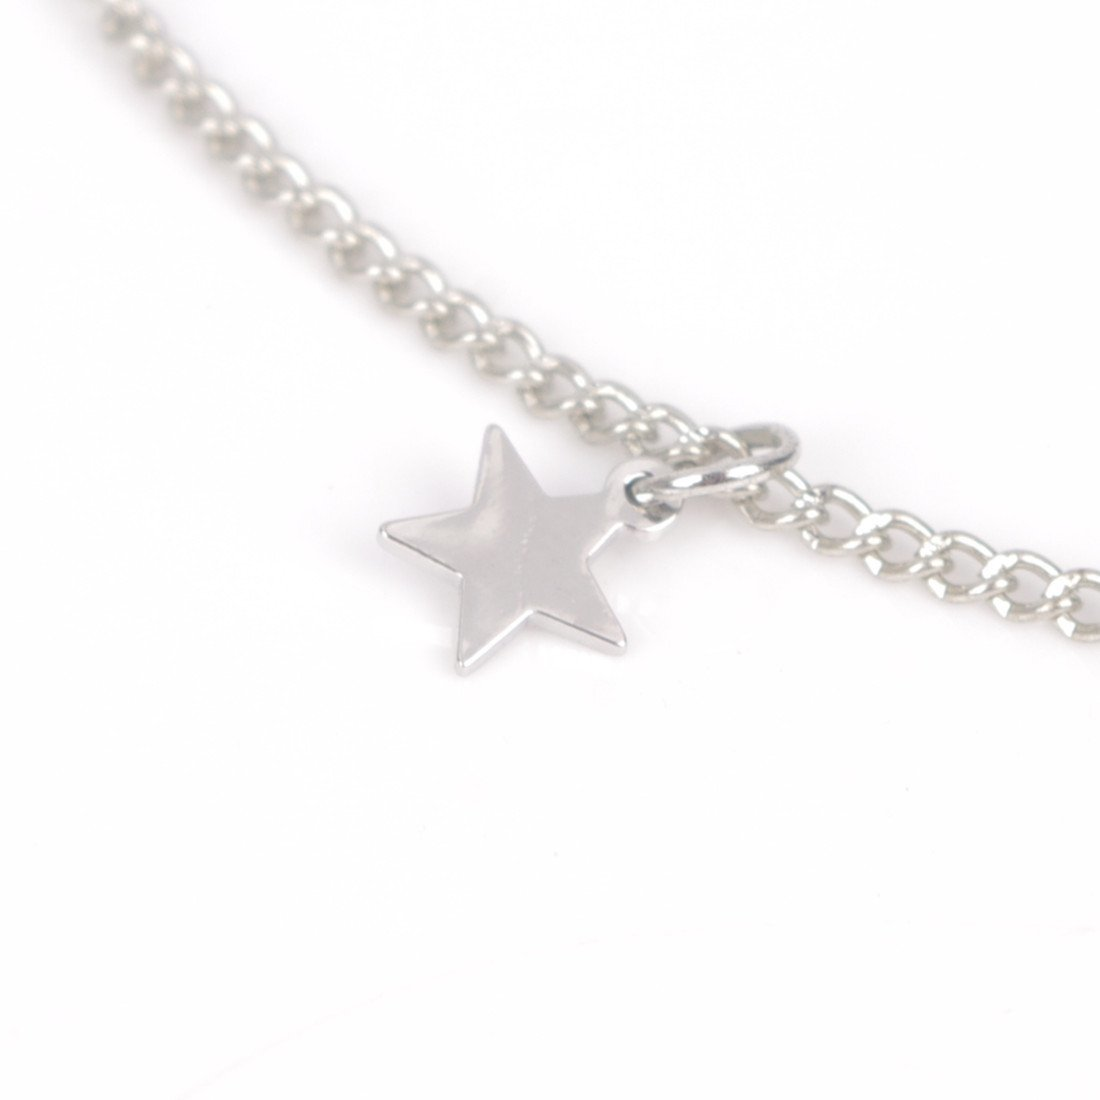 Retro Multi-layers Chinese Knot Star Gem Pendant Choker Necklace Gift